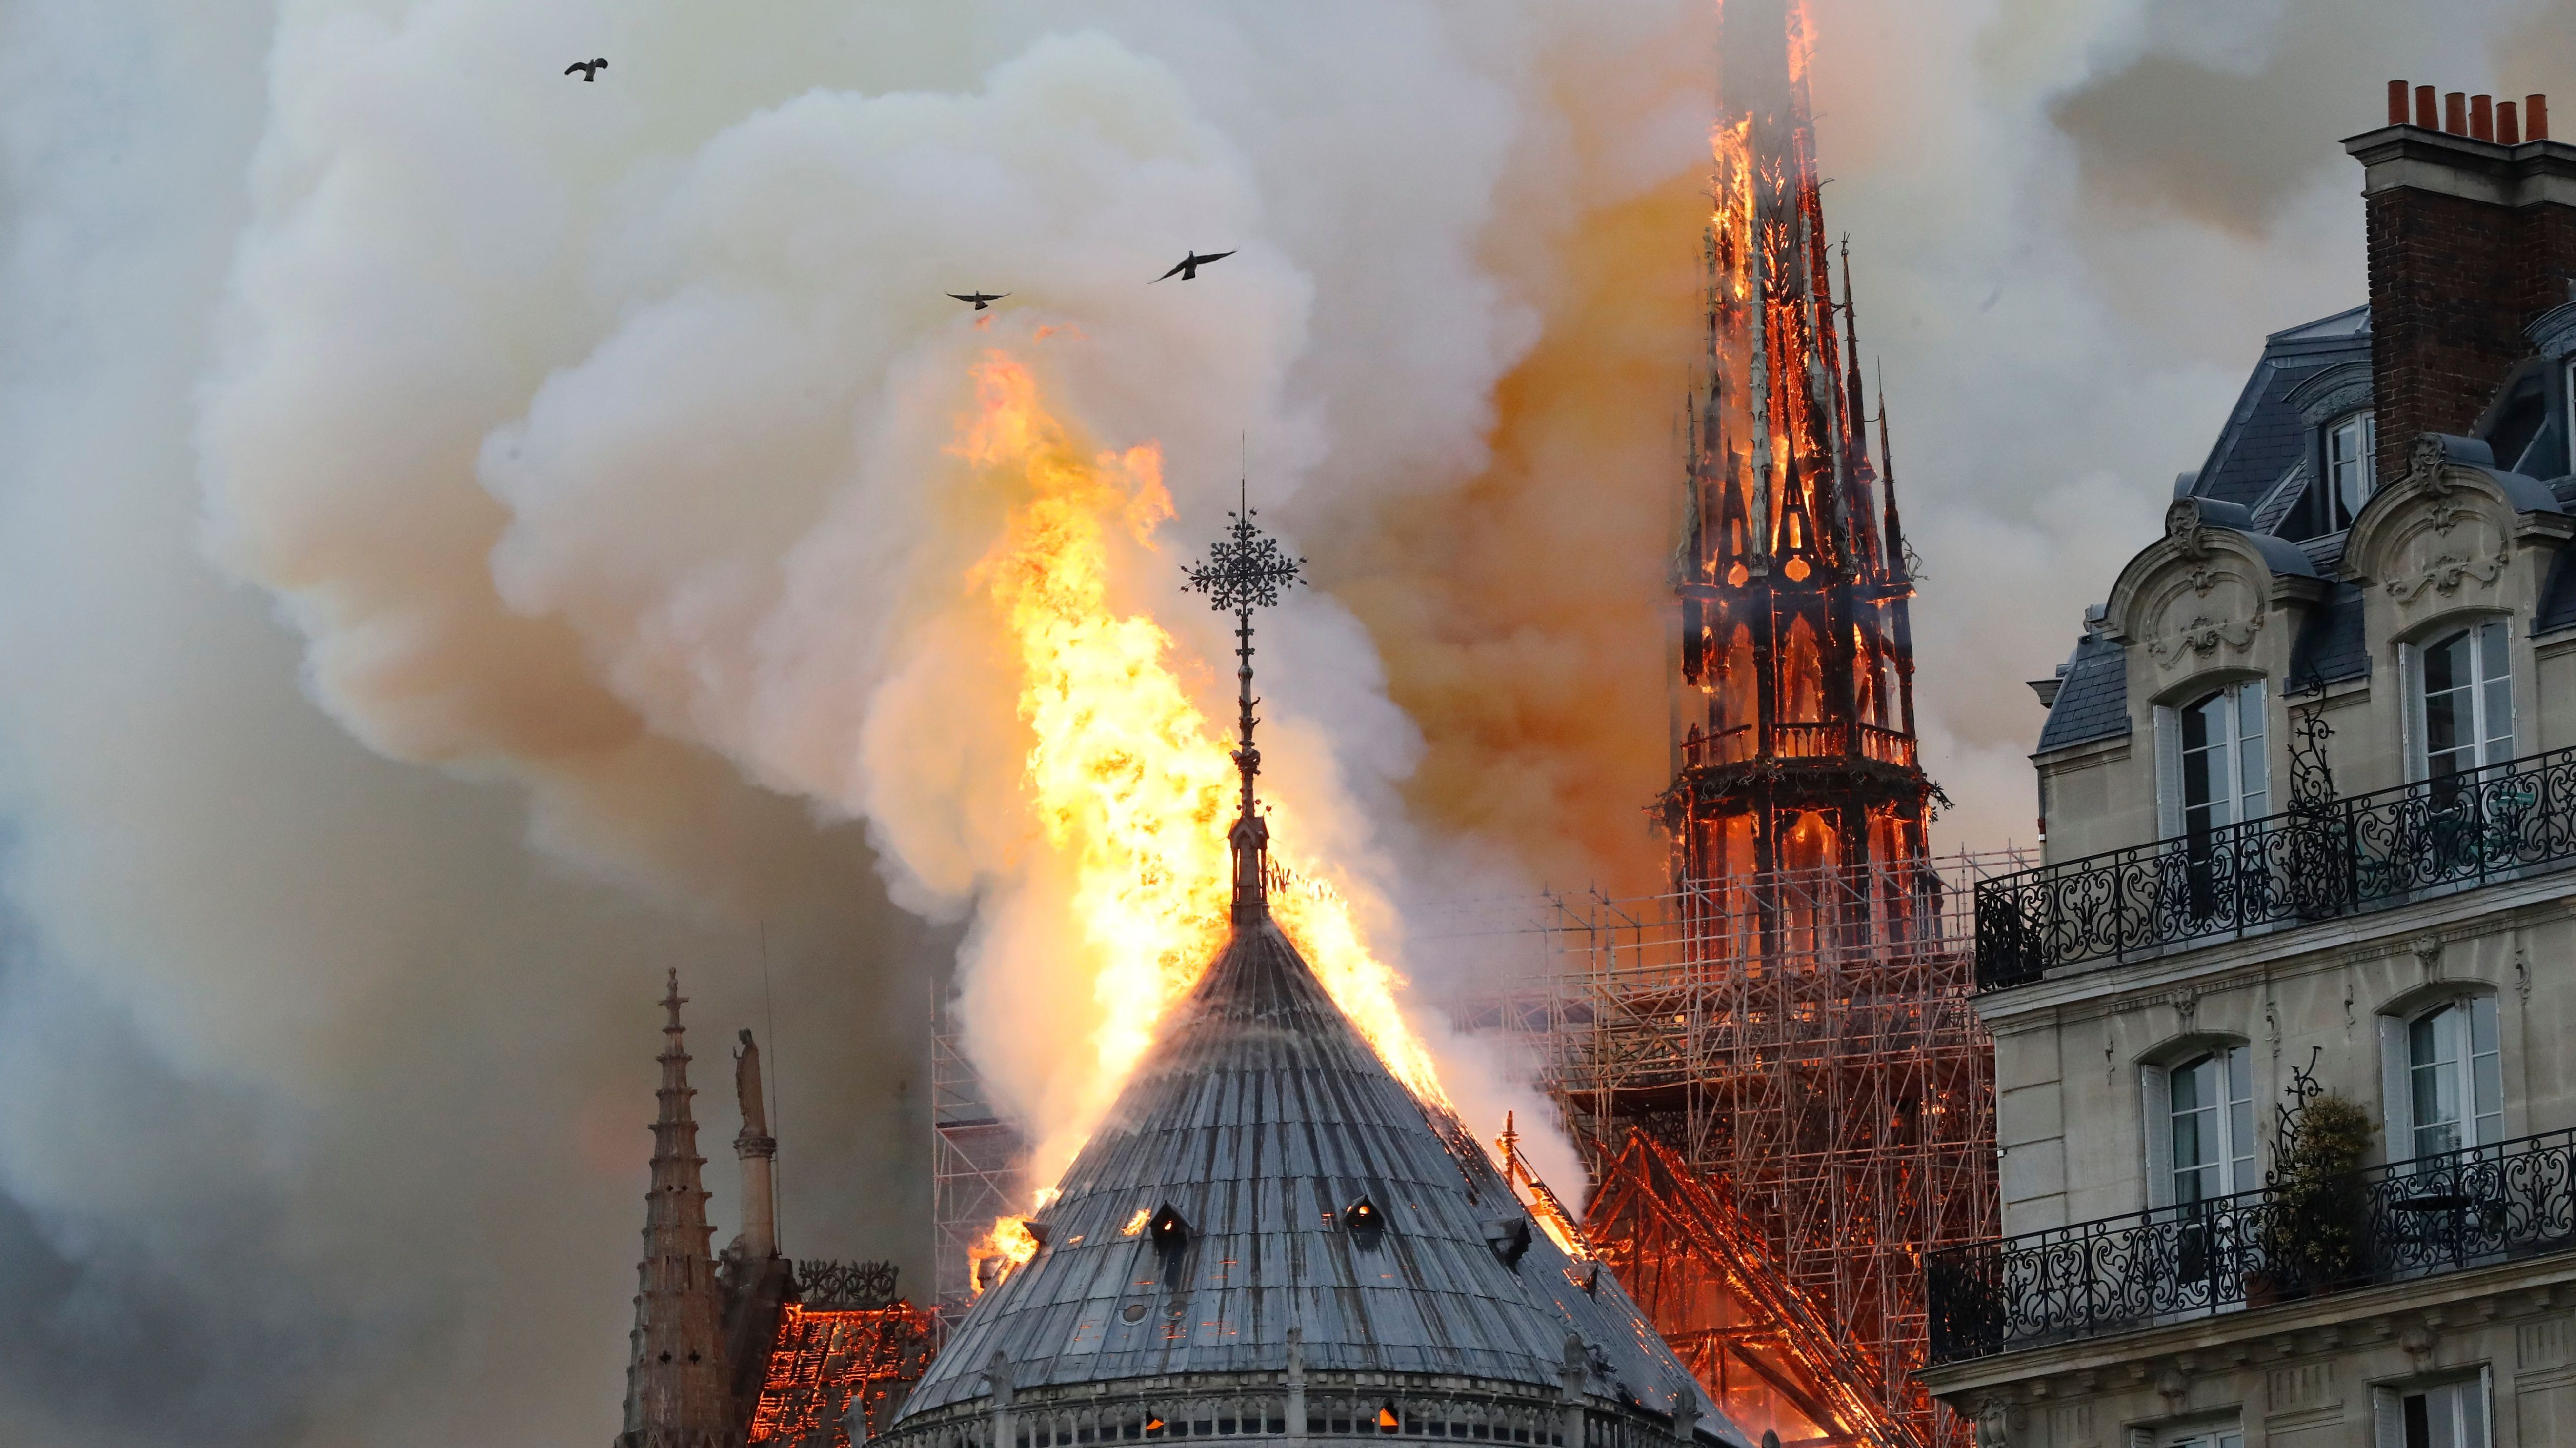 Smoke and flames rise during a fire at the landmark Notre-Dame Cathedral in central Paris on April 15, 2019